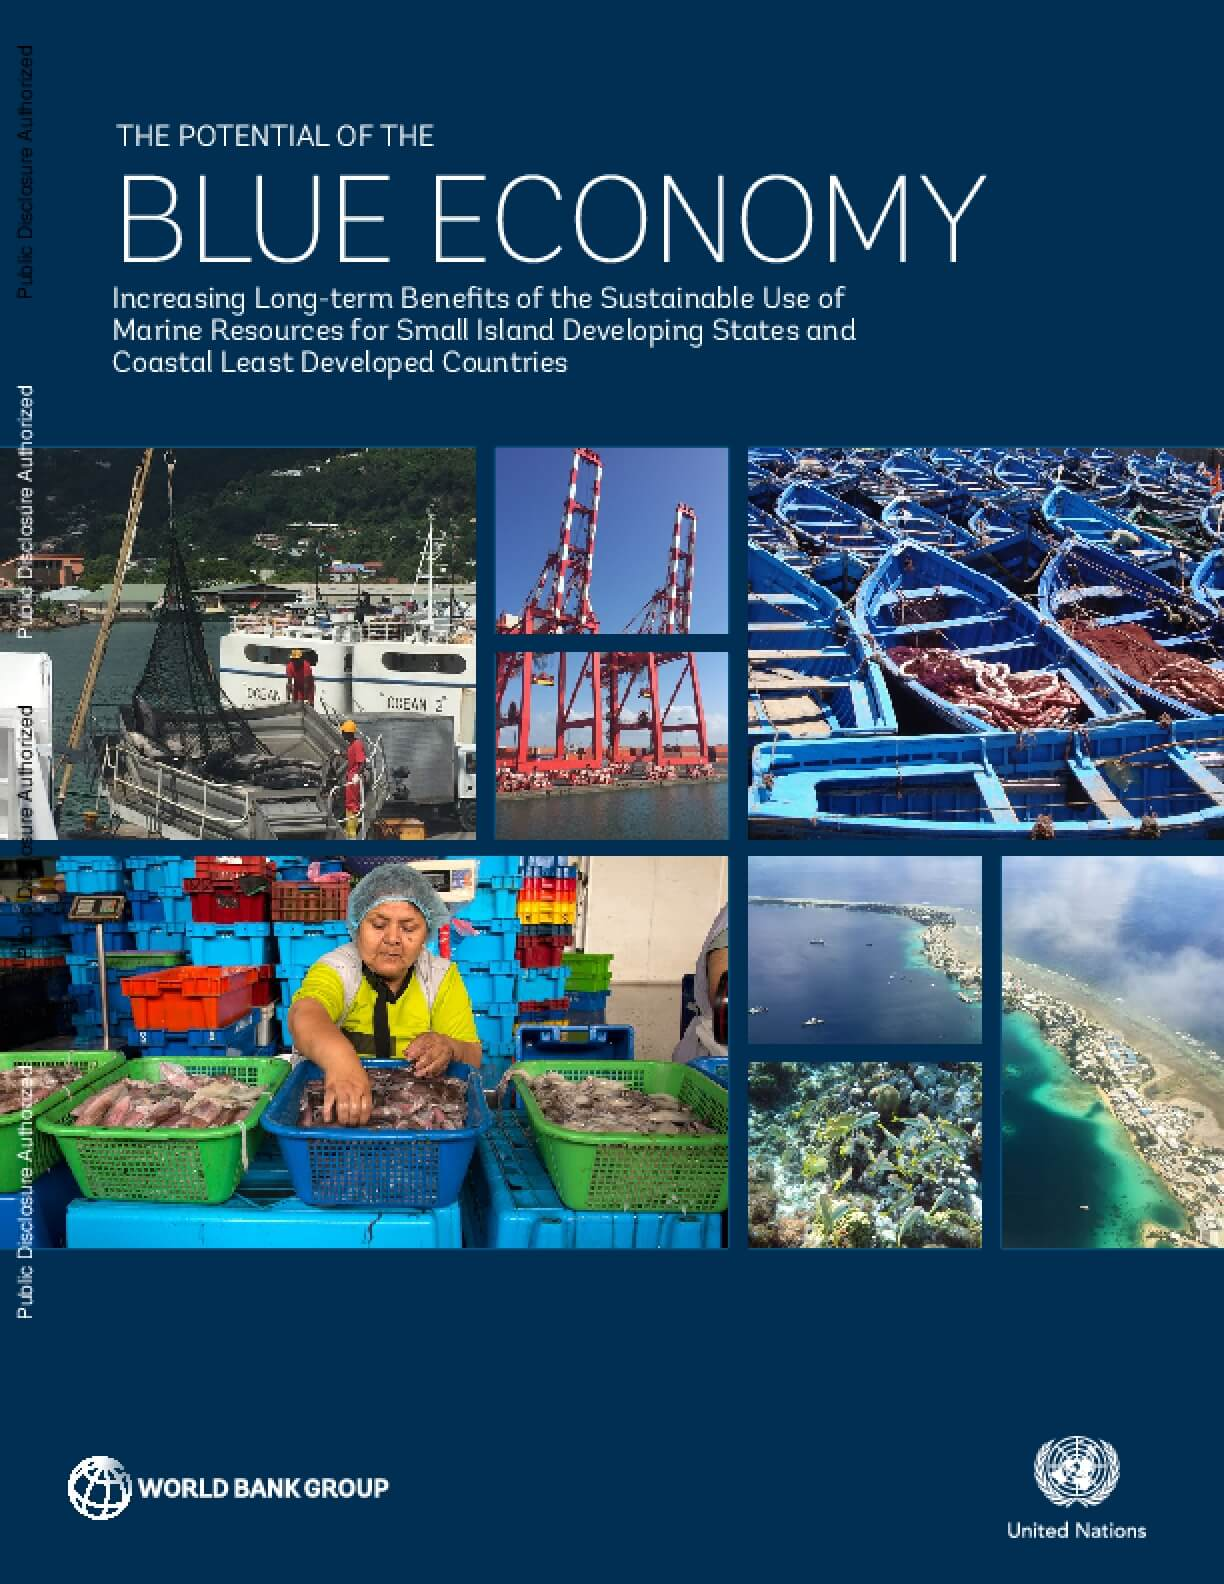 The Potential of the Blue Economy : Increasing Long-term Benefits of the Sustainable Use of Marine Resources for Small Island Developing States and Coastal Least Developed Countries